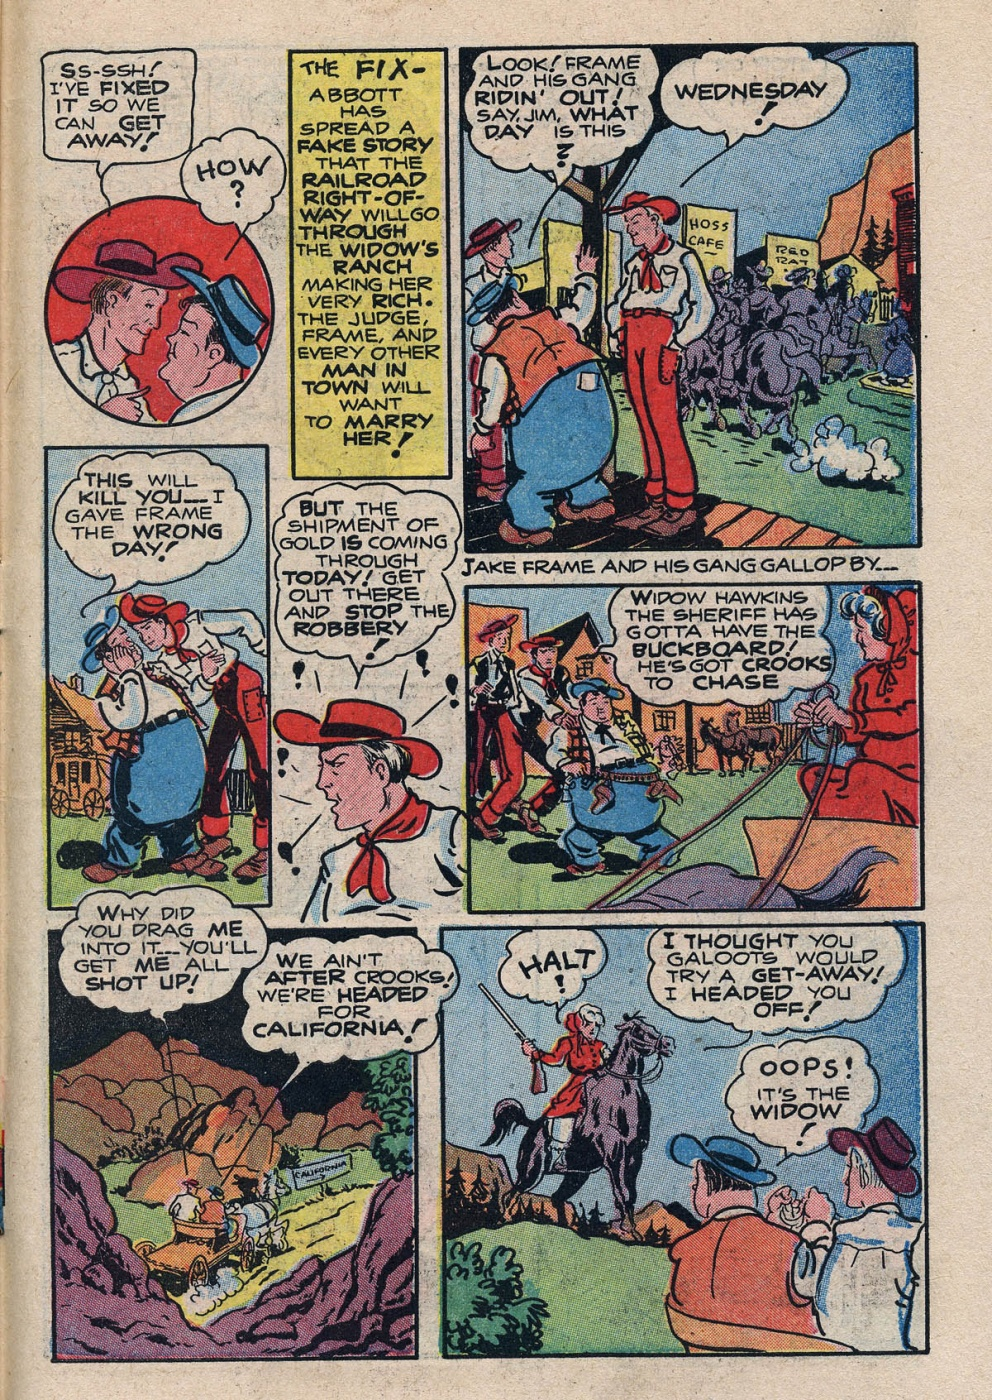 Funny Comic Strips - Abbott and Costello 001 (Feb 1948) 31